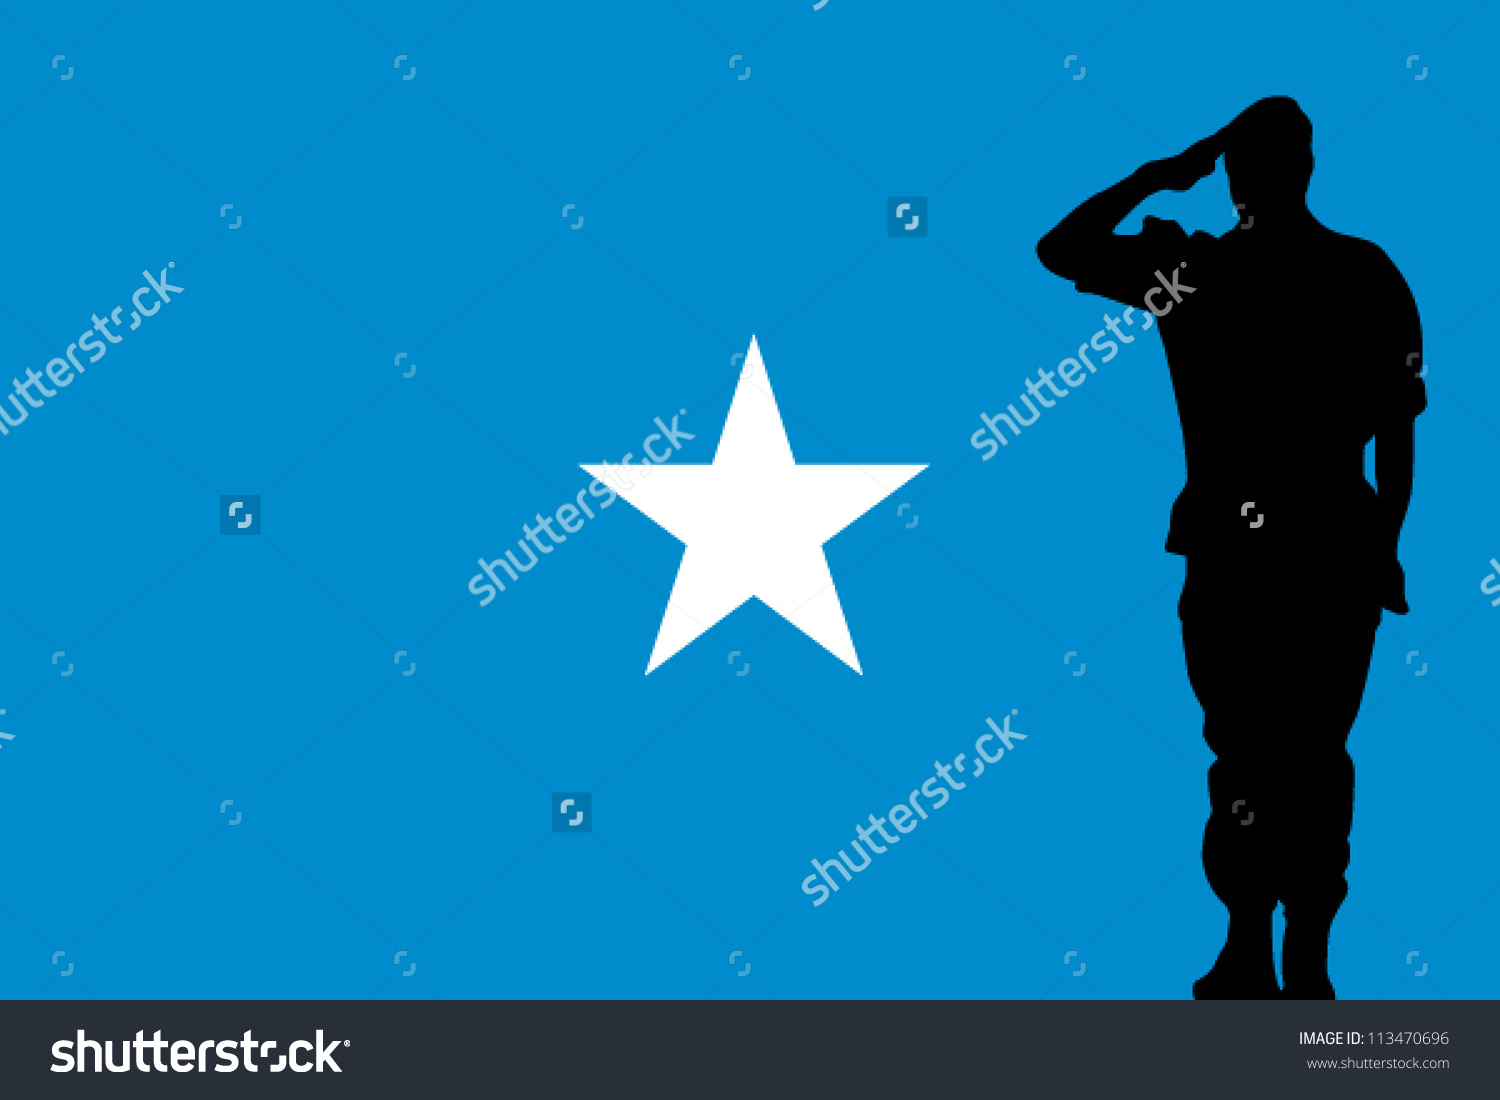 Free vector graphic: Somalia, Flag, National Flag Free Image on